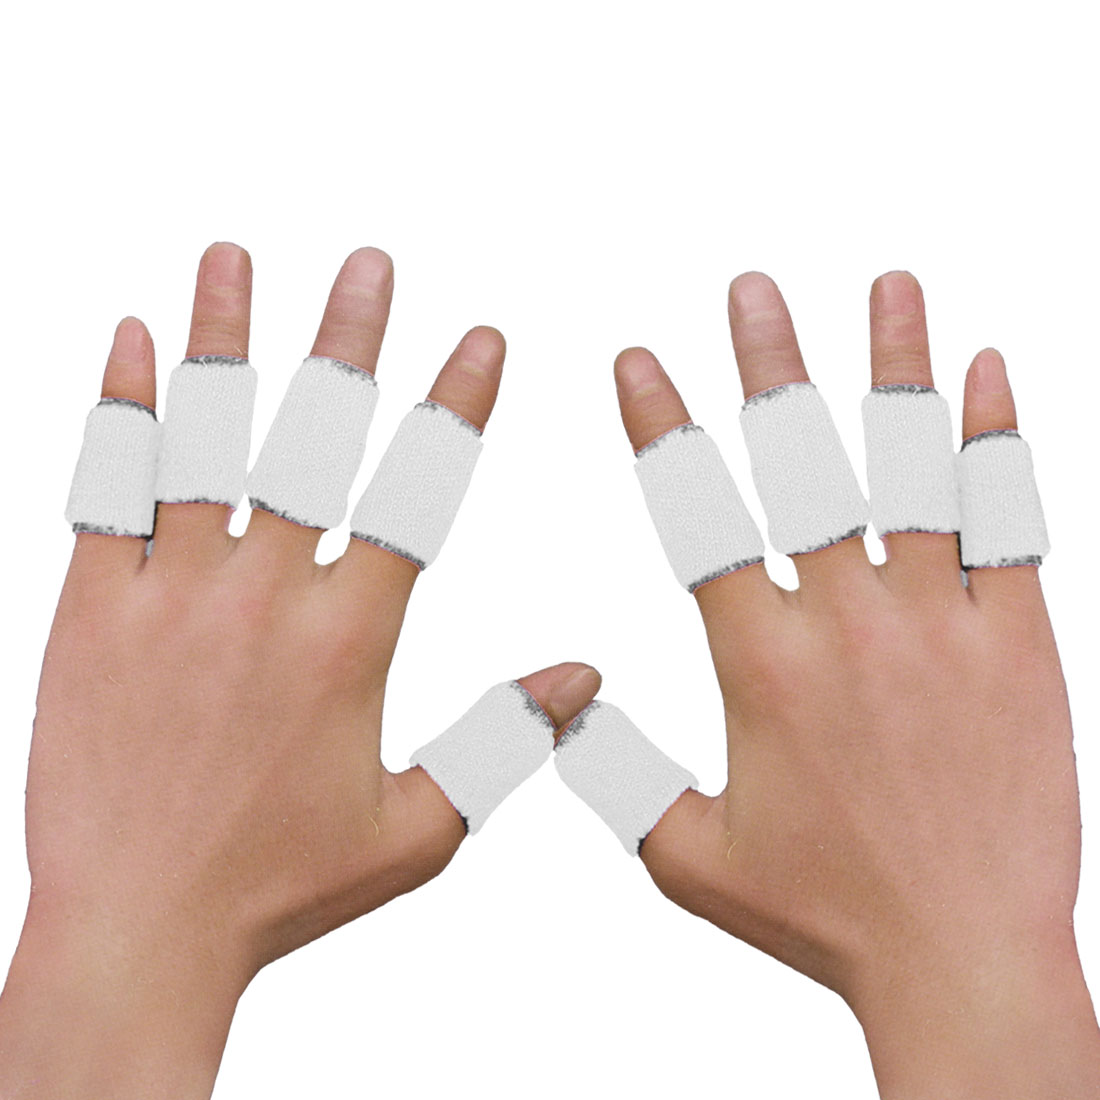 Unique Bargains 10Pcs White Sports Gear Comfort Basketball Finger Sleeves Protector for Arthritis